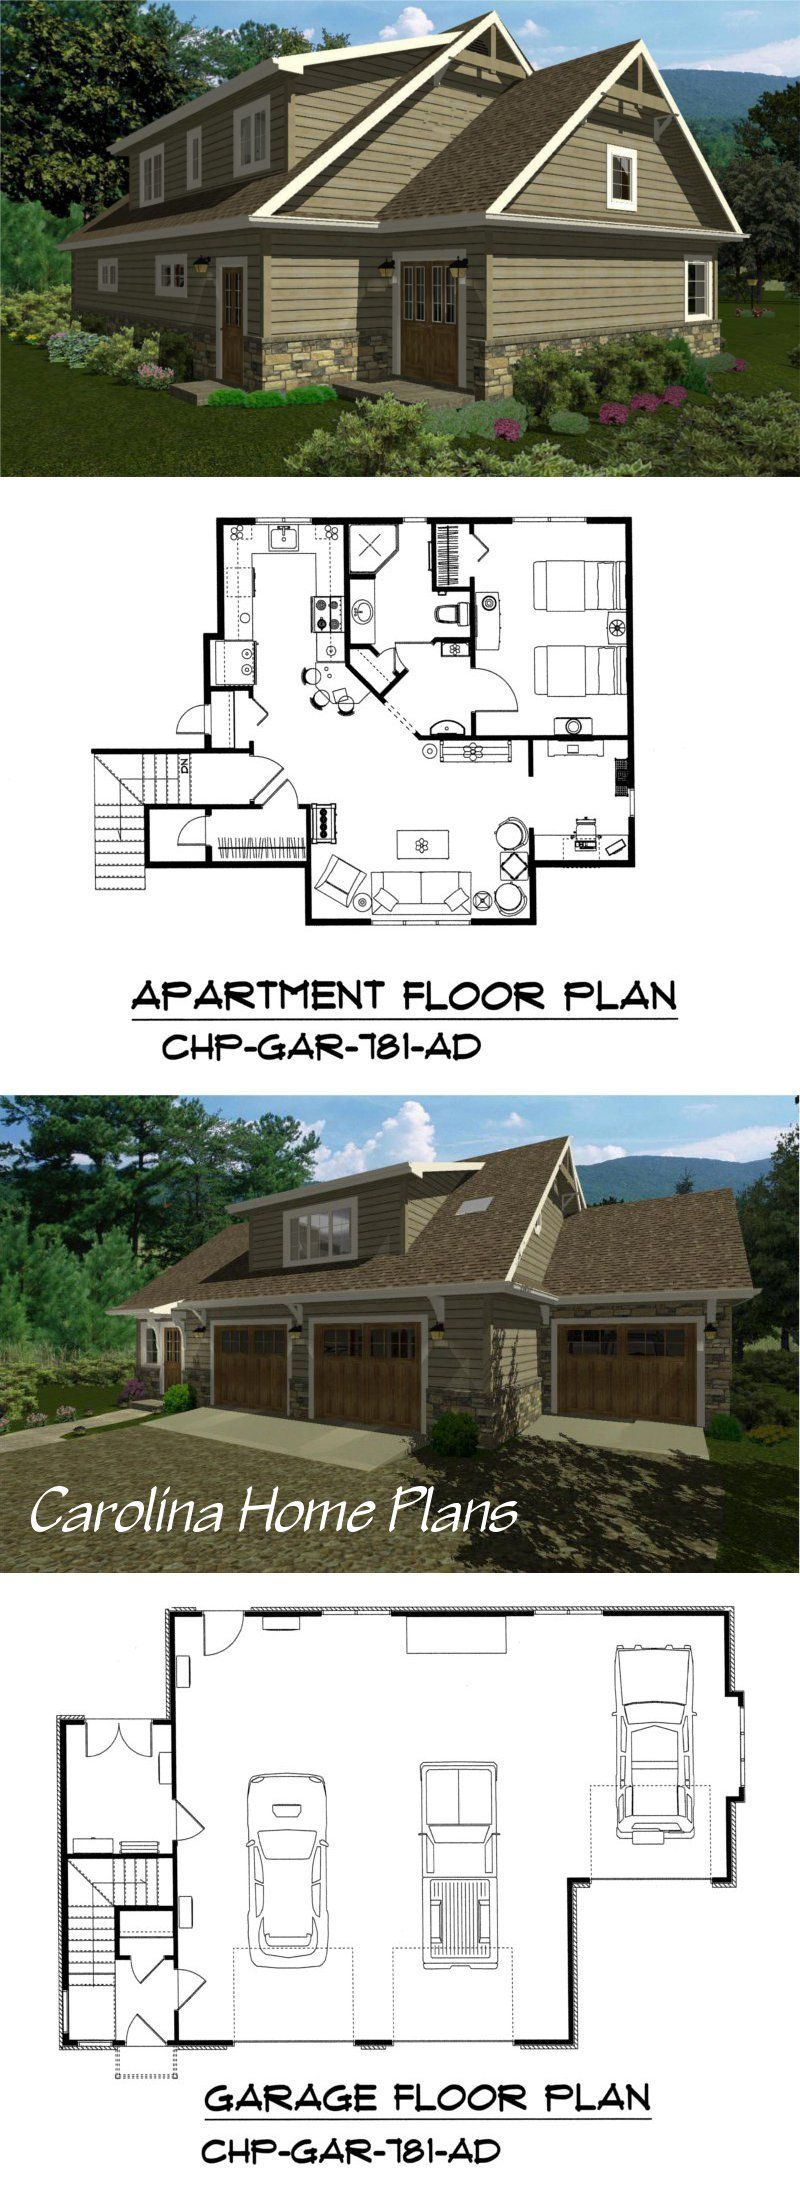 craftsman style 2 car or 3 car garage apartment plan gar 781 ad craftsman style 2 car or 3 car garage apartment plan gar 781 ad see floor plan details and specifications build in stages pinterest garage